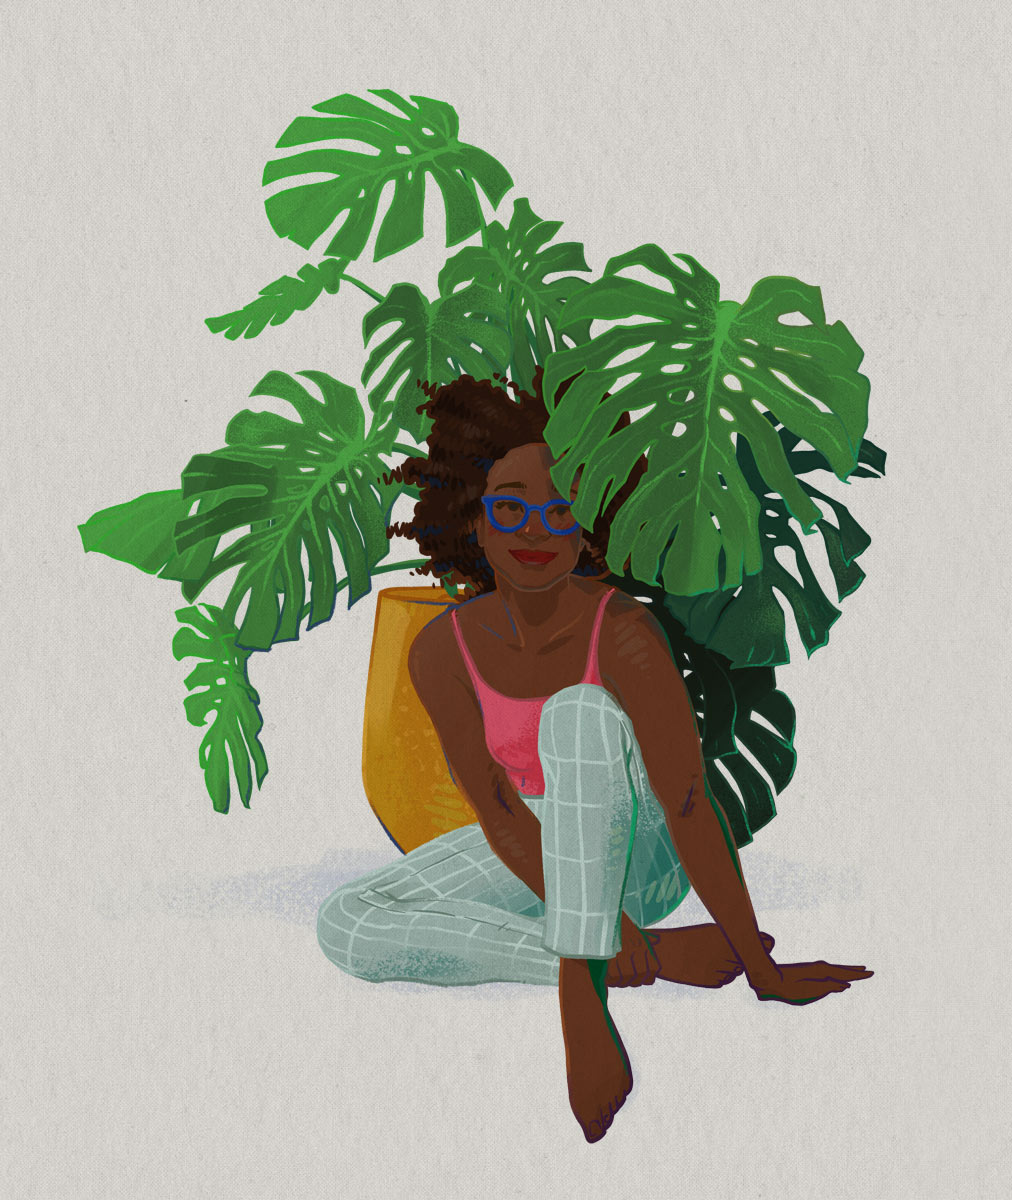 Illustration by Brittany Norris of monstera houseplant